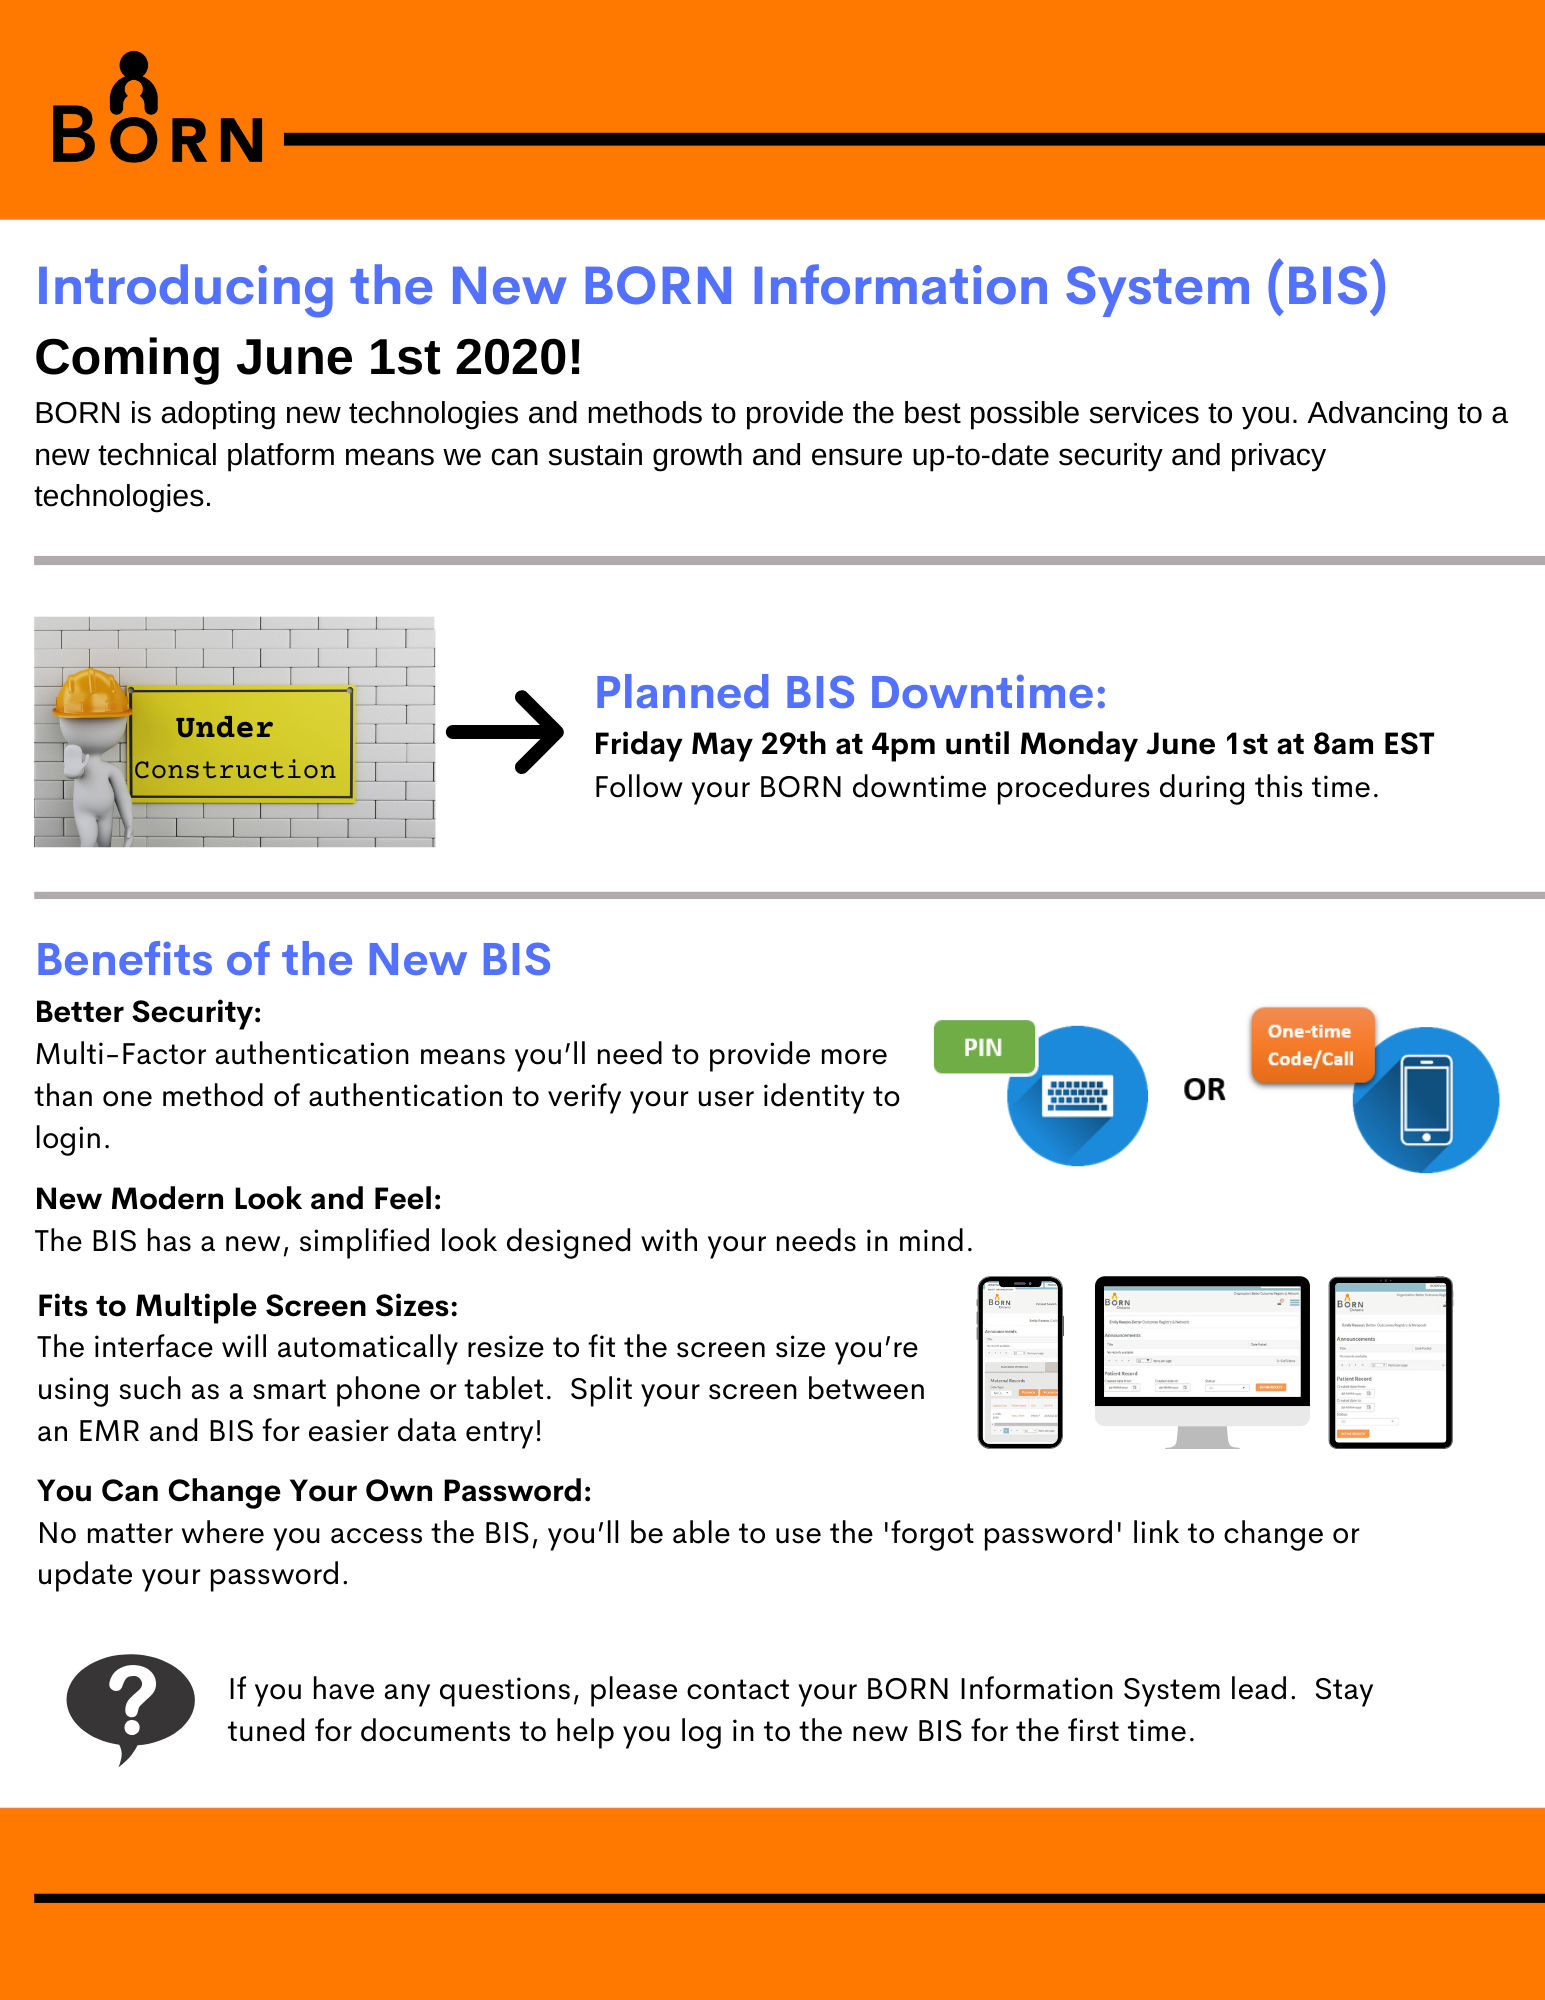 New BORN Information System coming June 1 2020